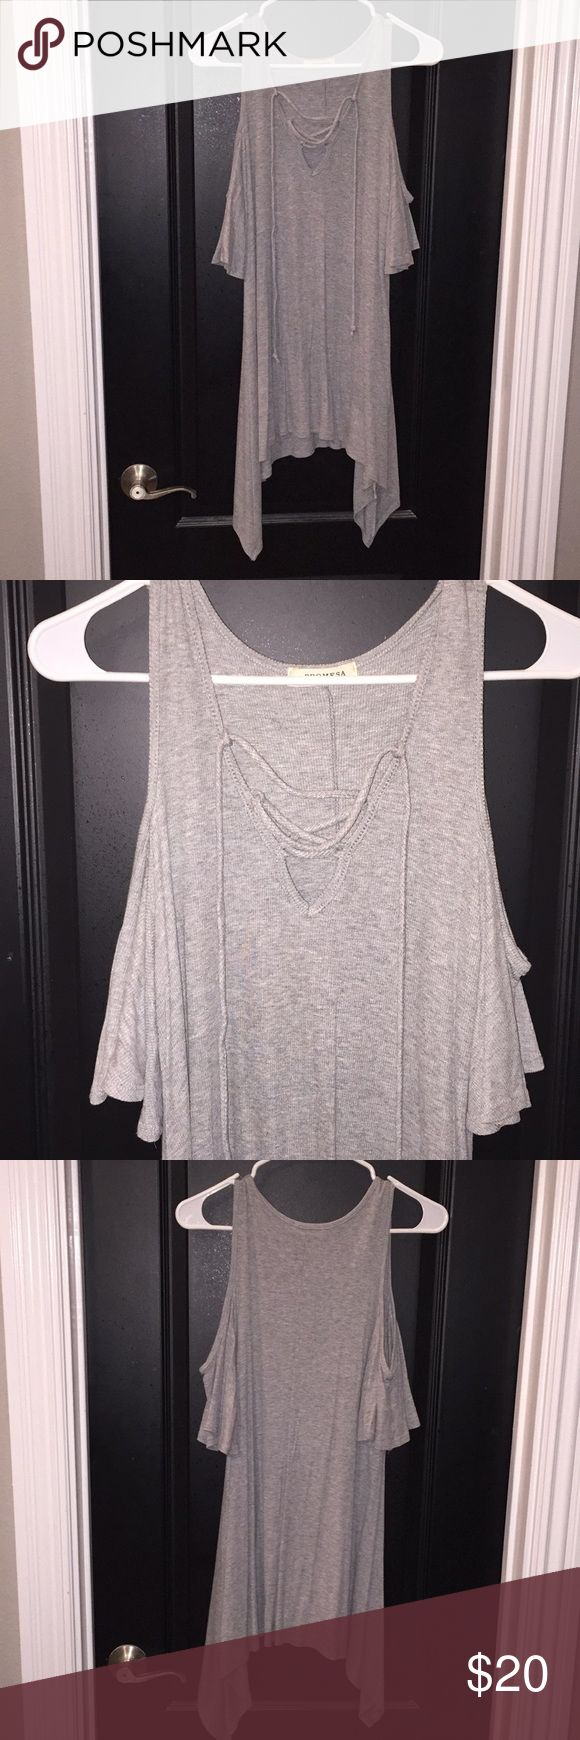 Gray Cold Shoulder Top, Sz M Long gray cold shoulder top with lace up neck line in size medium. Shirt has been worn once. Is from a boutique. Goes longer on the sides. Fits loose at bottom and tighter in chest area. It's a very soft and stretchy T-shirt like material, very comfortable! Promesa Tops Tees - Short Sleeve